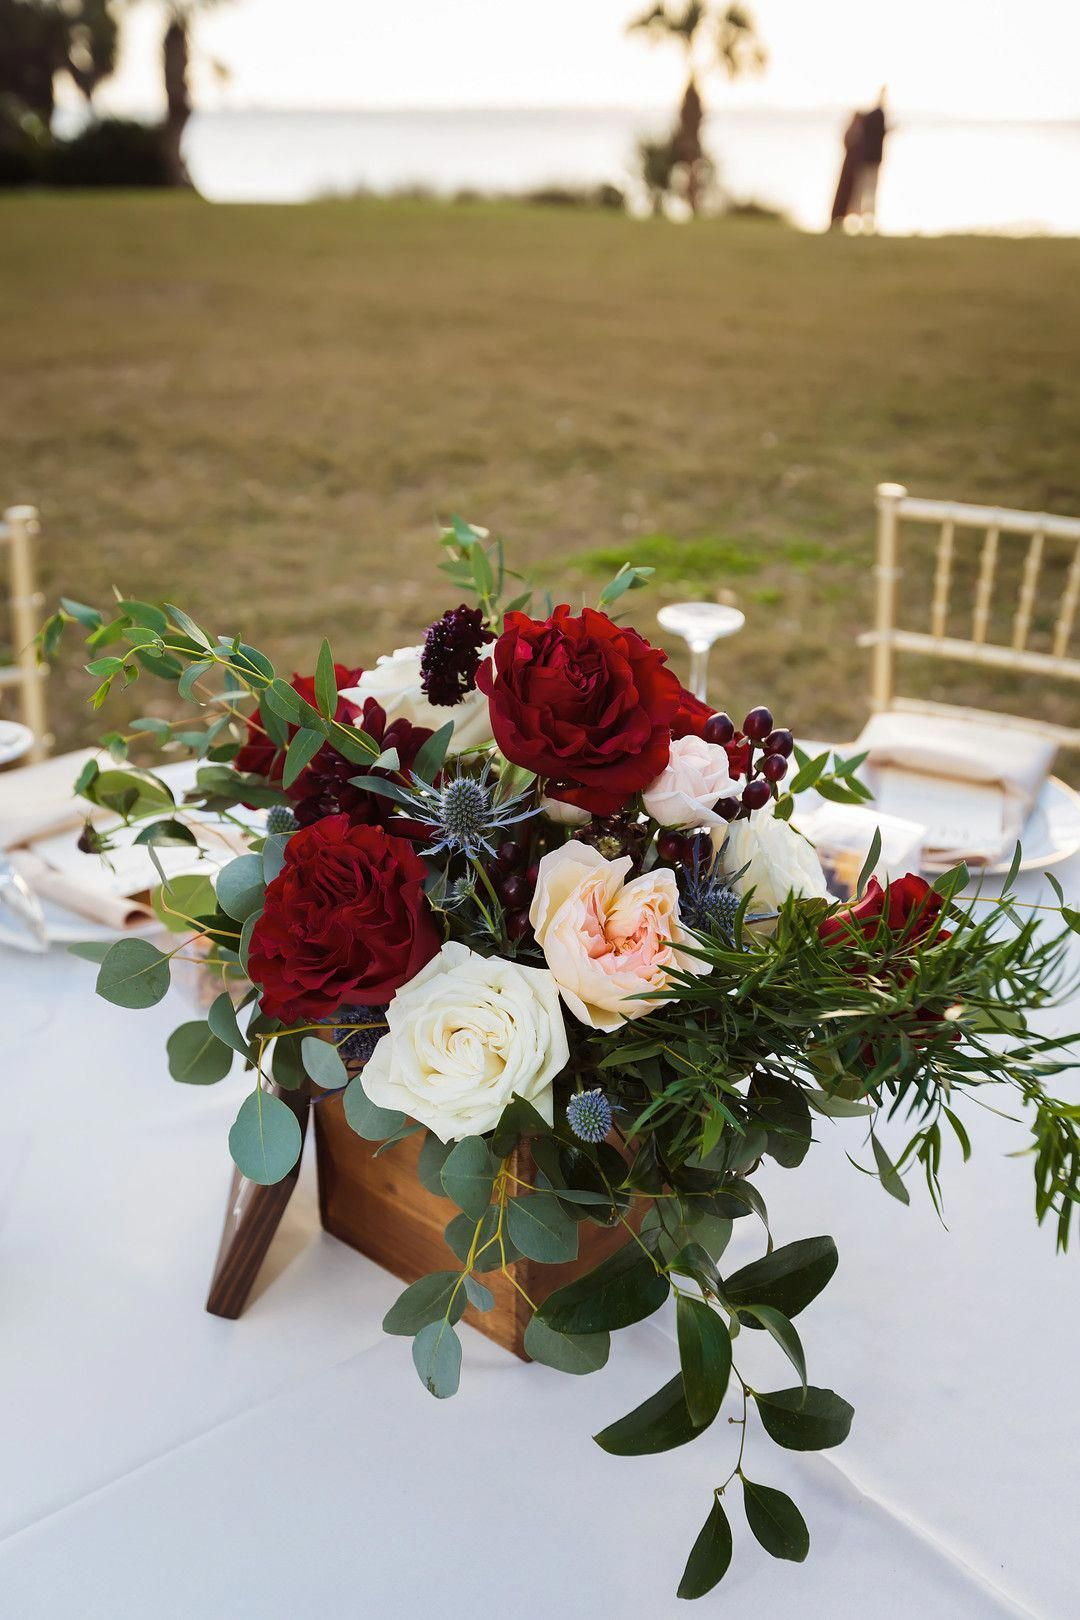 Ivory Blush And Burgundy Floral Centerpiece In A Rustic Wooden Box For A In 2020 Wedding Floral Centerpieces Flower Centerpieces Wedding Burgundy Wedding Centerpieces